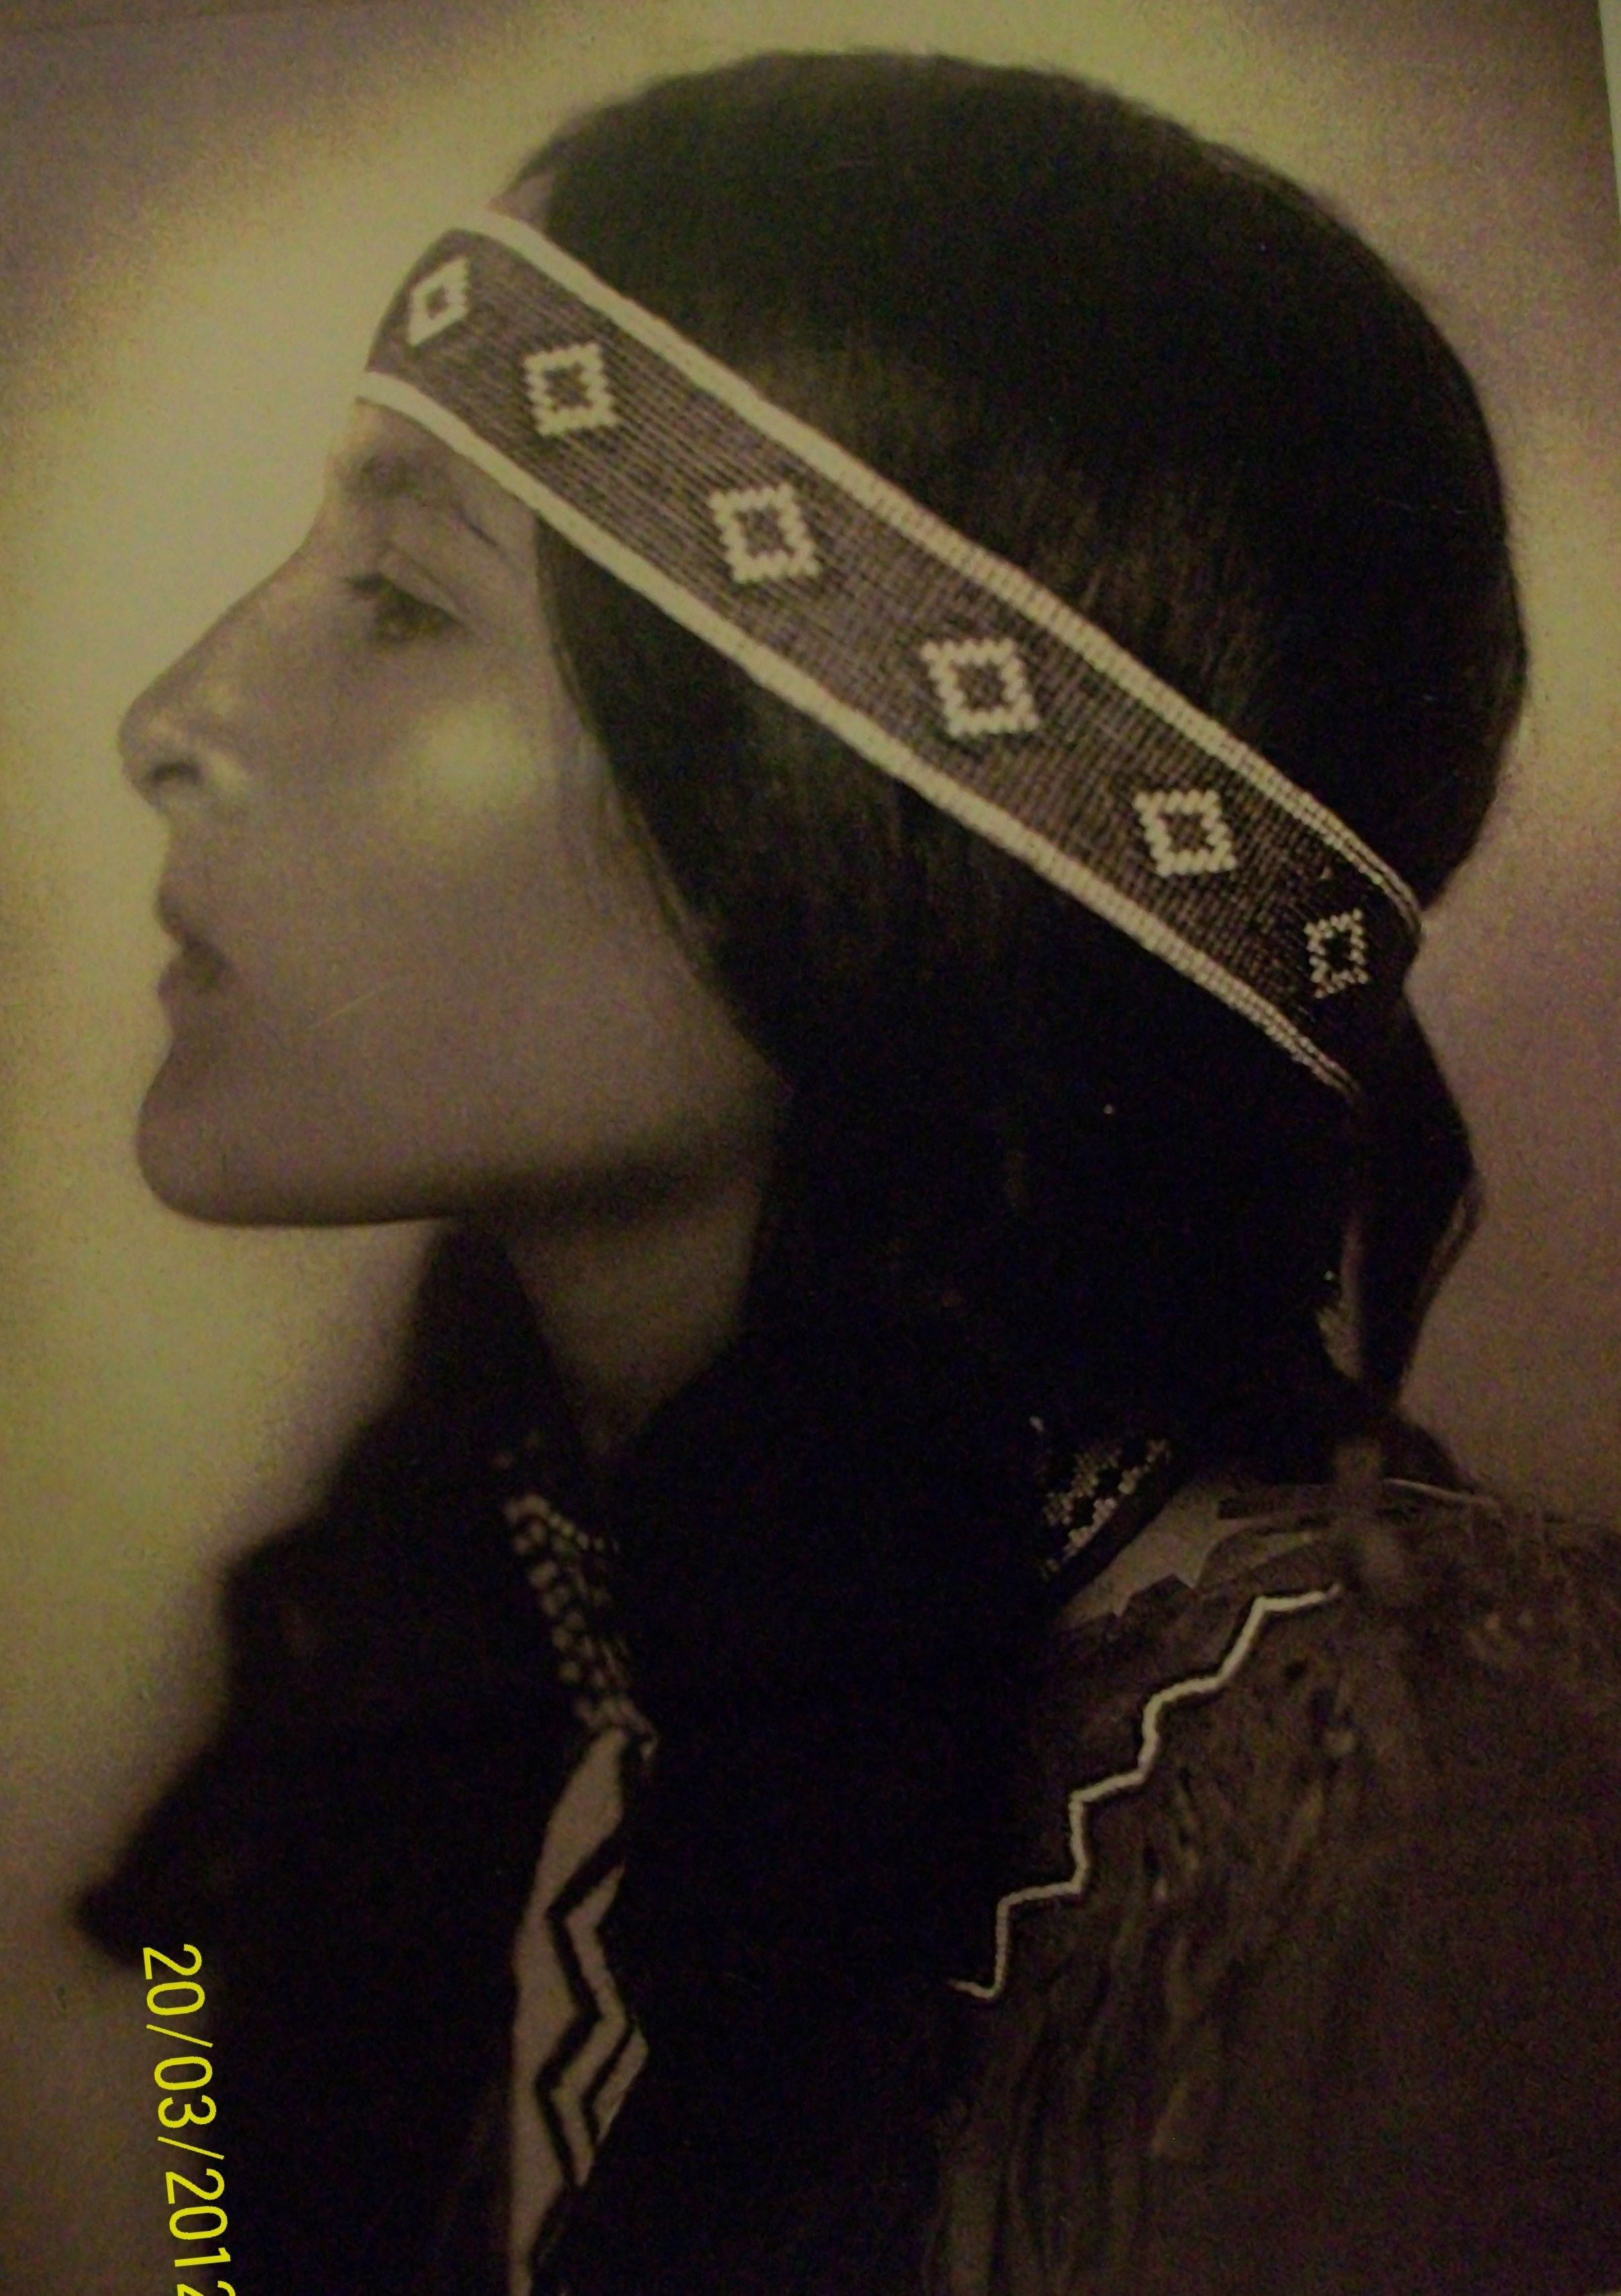 Http Nativeamericanspictures Com Images 100 1782 Jpg Native American Cherokee Native American Women Cherokee Indian Women